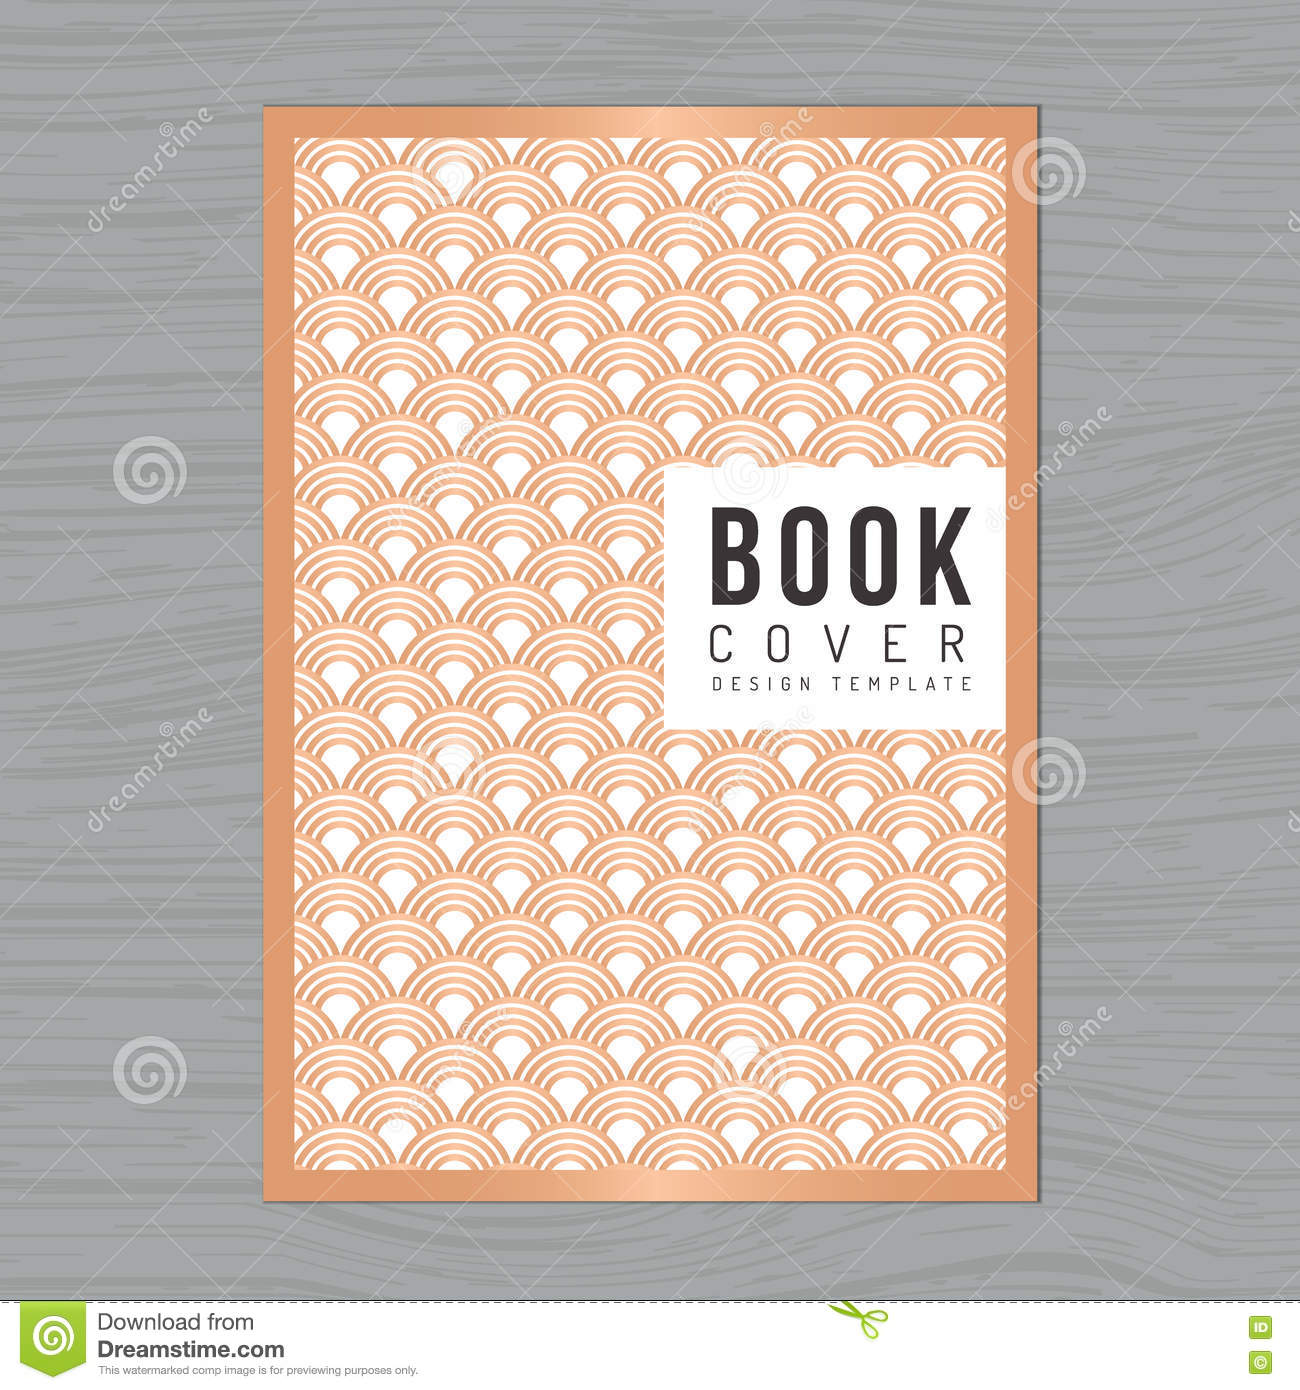 Background Design For Book Cover : Abstract wave background for book cover poster flyer